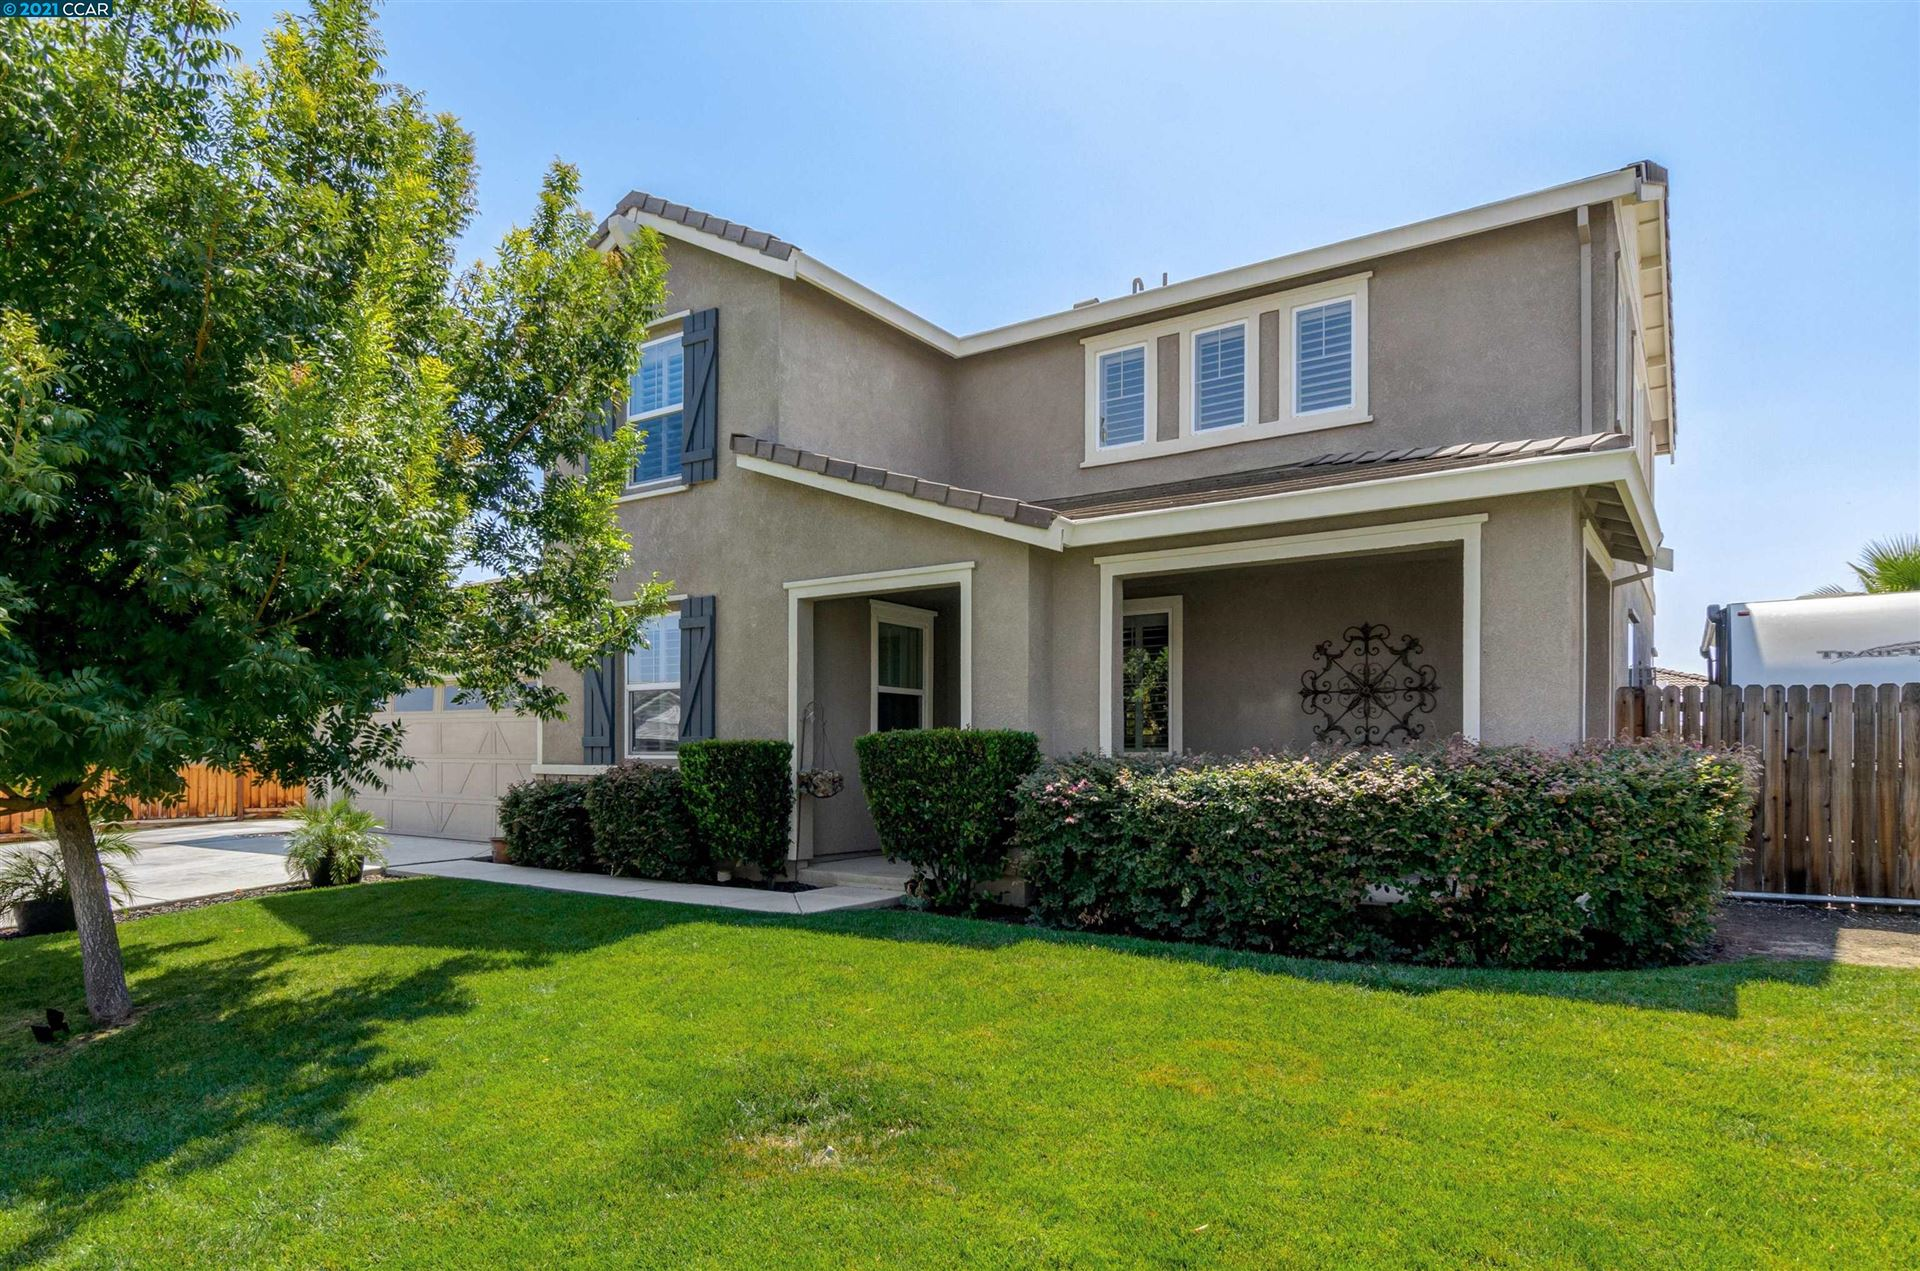 Photo of 916 Poppy Dr, BRENTWOOD, CA 94513 (MLS # 40964608)